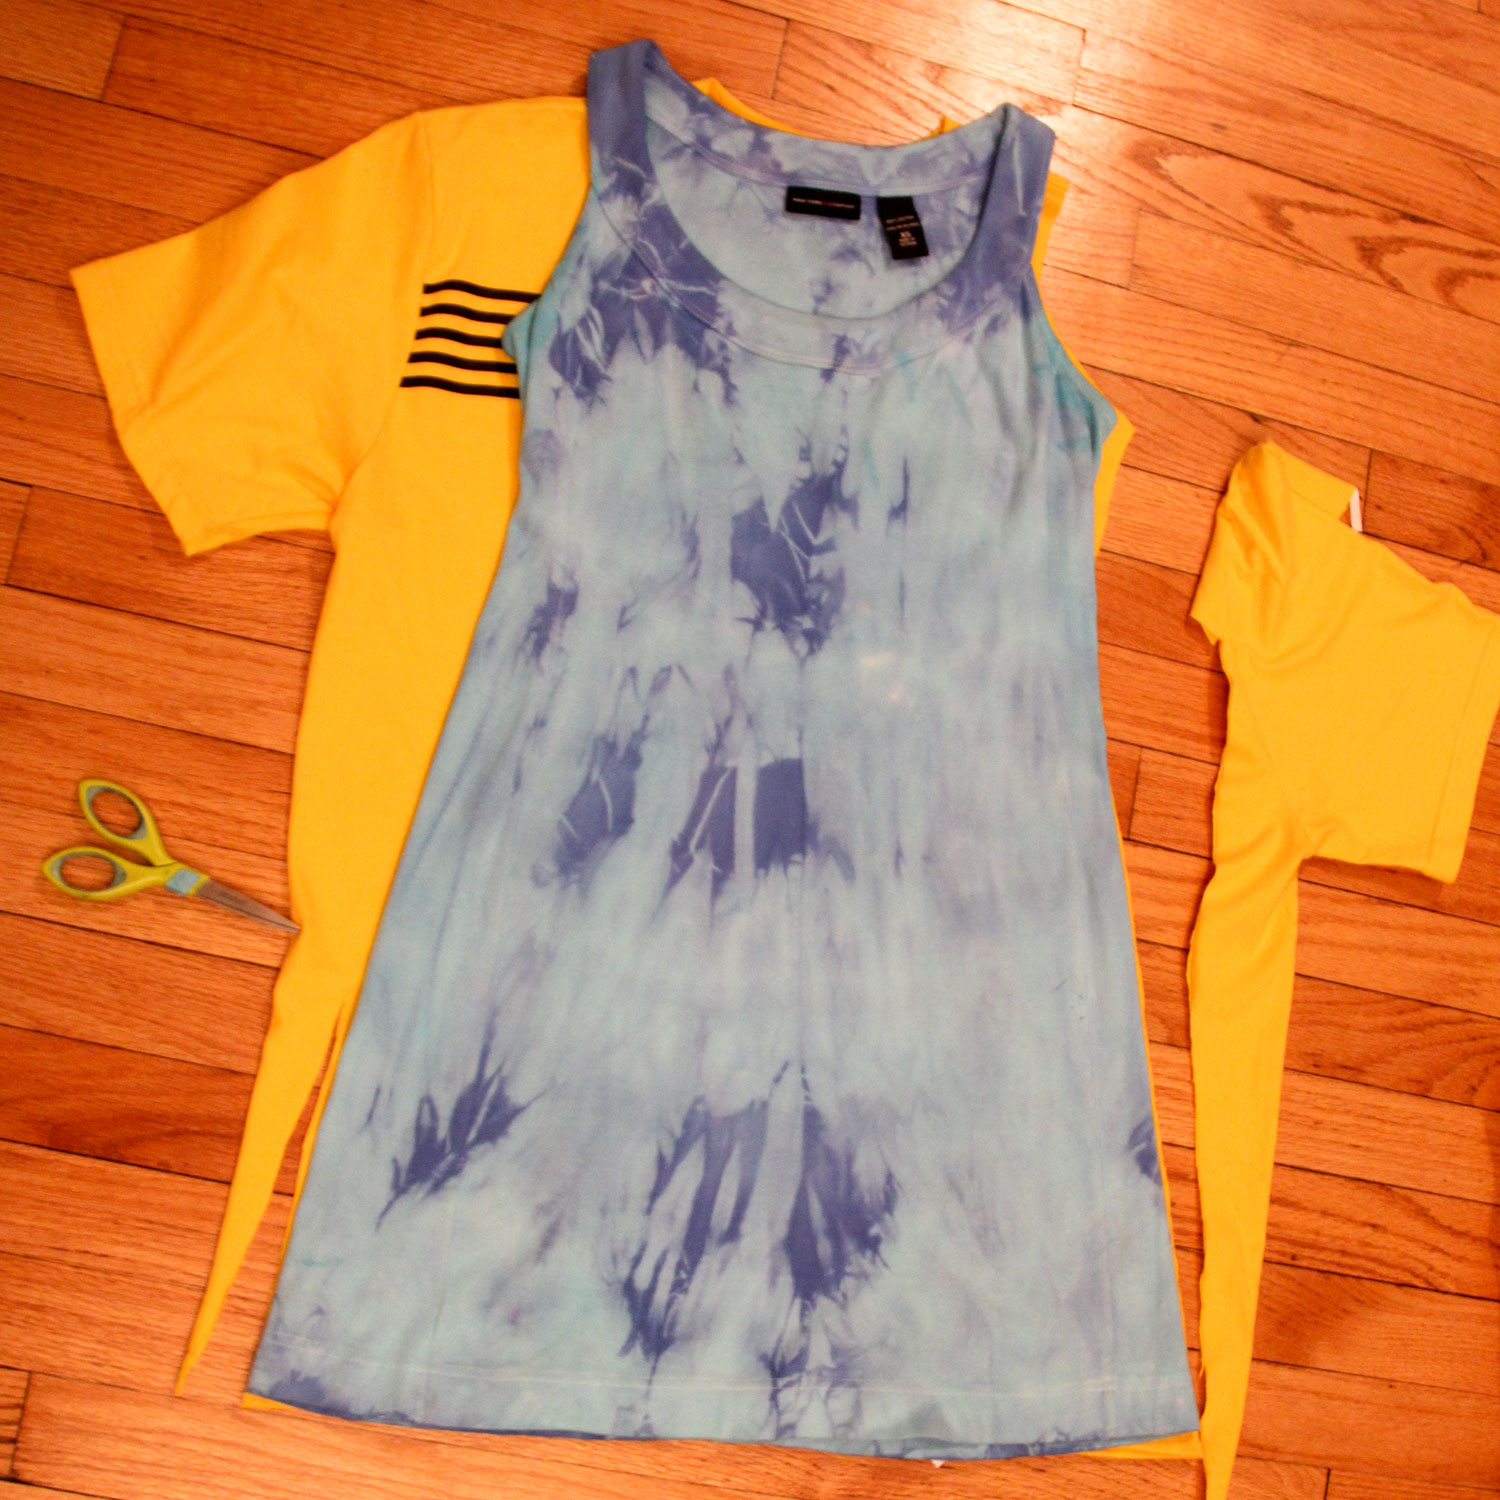 a7fe5492de8 DIY- men s T-Shirt into a women s tank dress